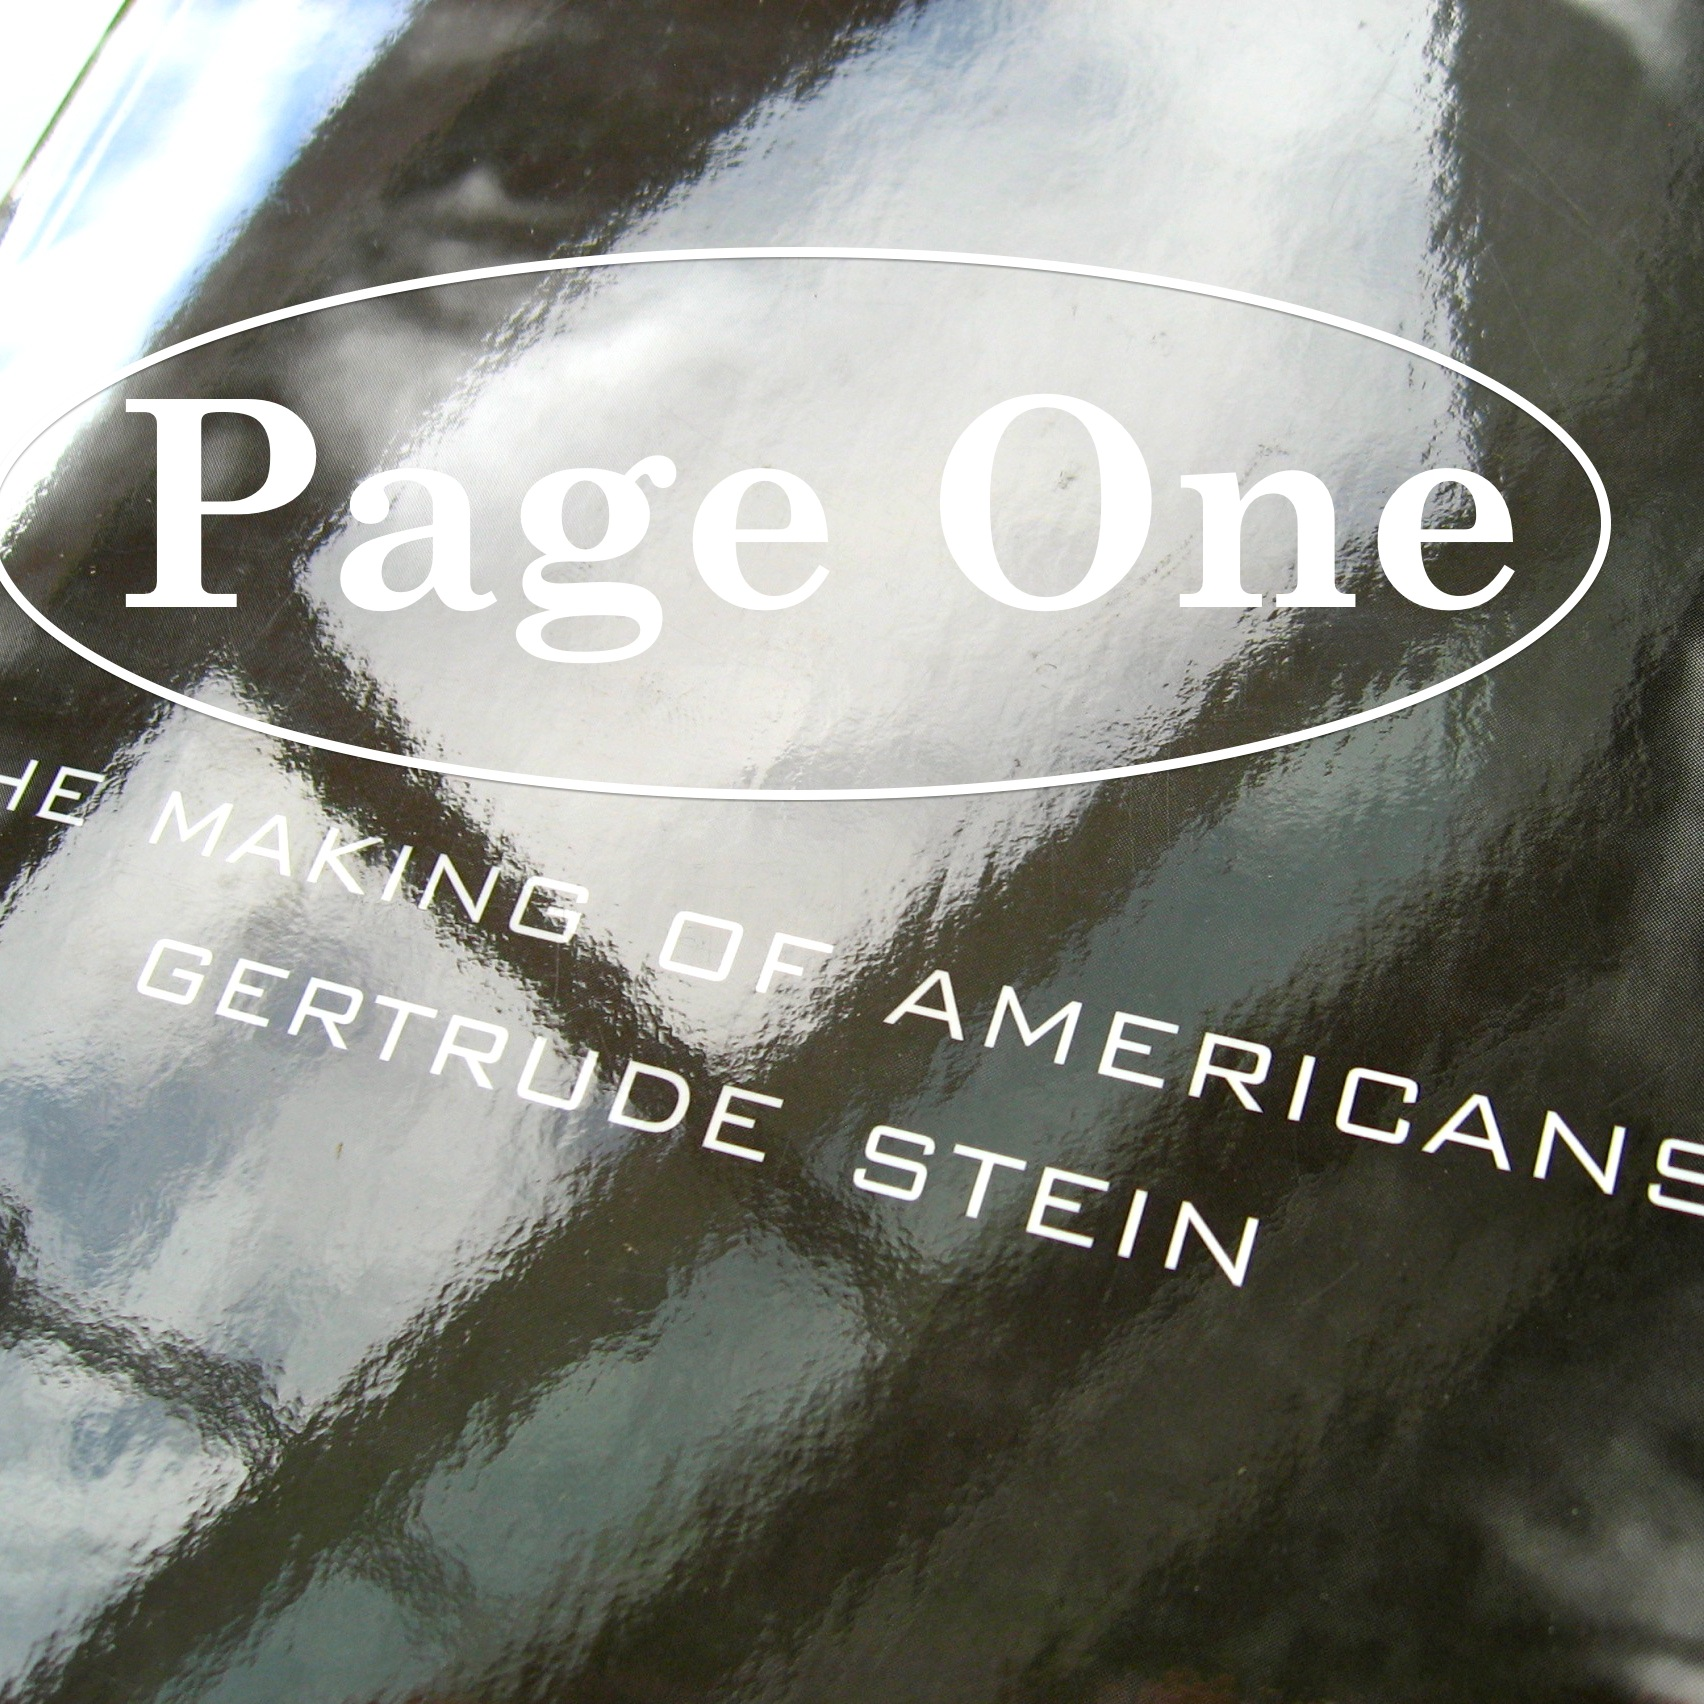 Episode image is a detail from the cover of The Making Of Americans by Gertrude Stein, published in 2006 by Dalkey Archive Press.